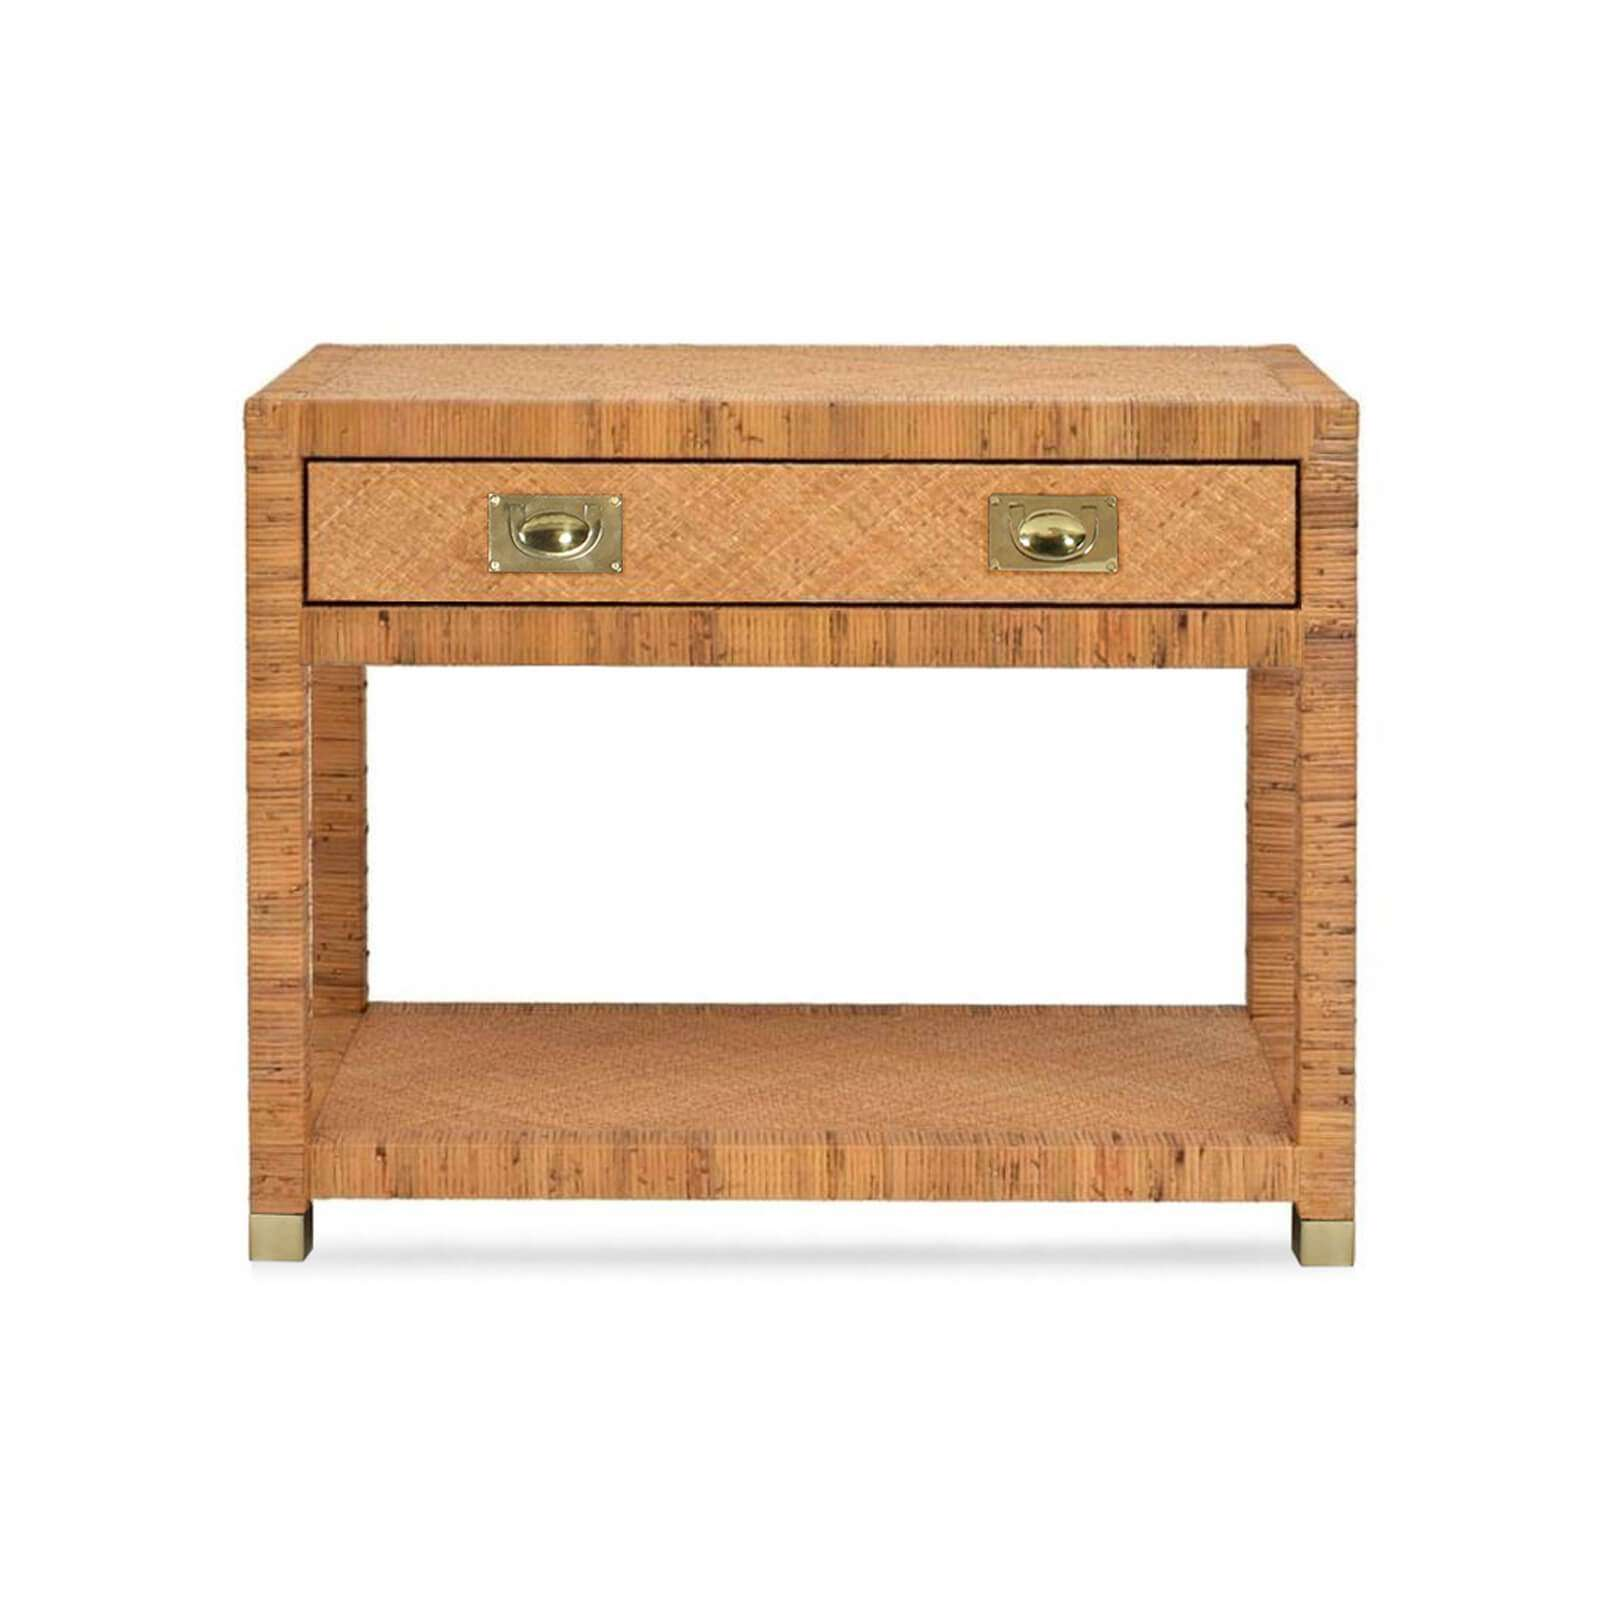 TB 536 INDIGO COAST BEDSIDE TABLE FRONT (2) - STUART MEMBERY HOME COLLECTION